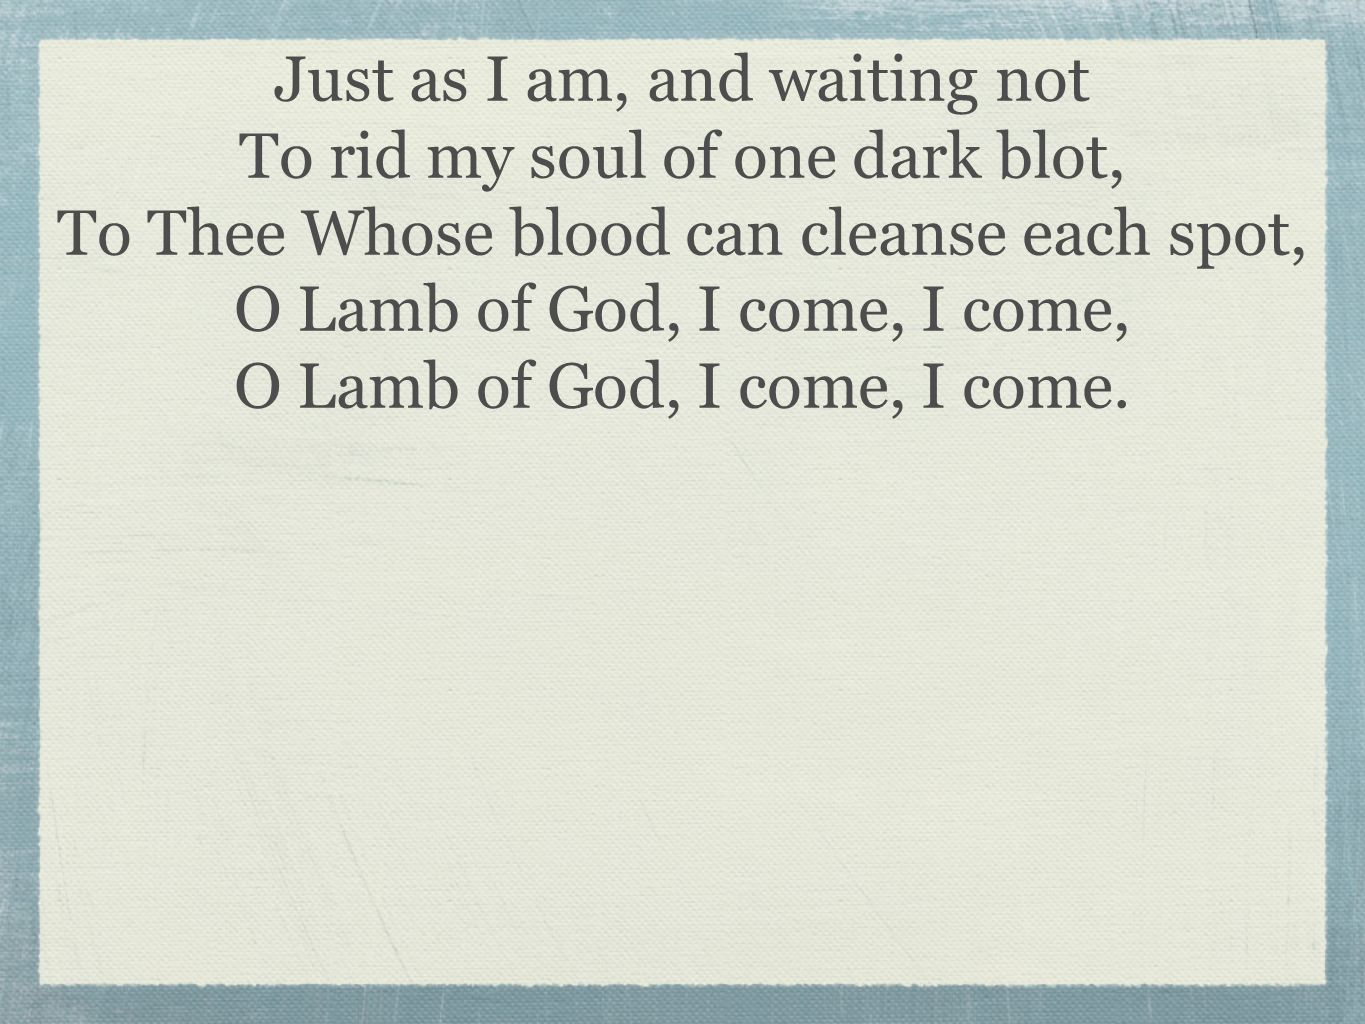 Just as I am, and waiting not To rid my soul of one dark blot, To Thee Whose blood can cleanse each spot, O Lamb of God, I come, I come, O Lamb of God, I come, I come.